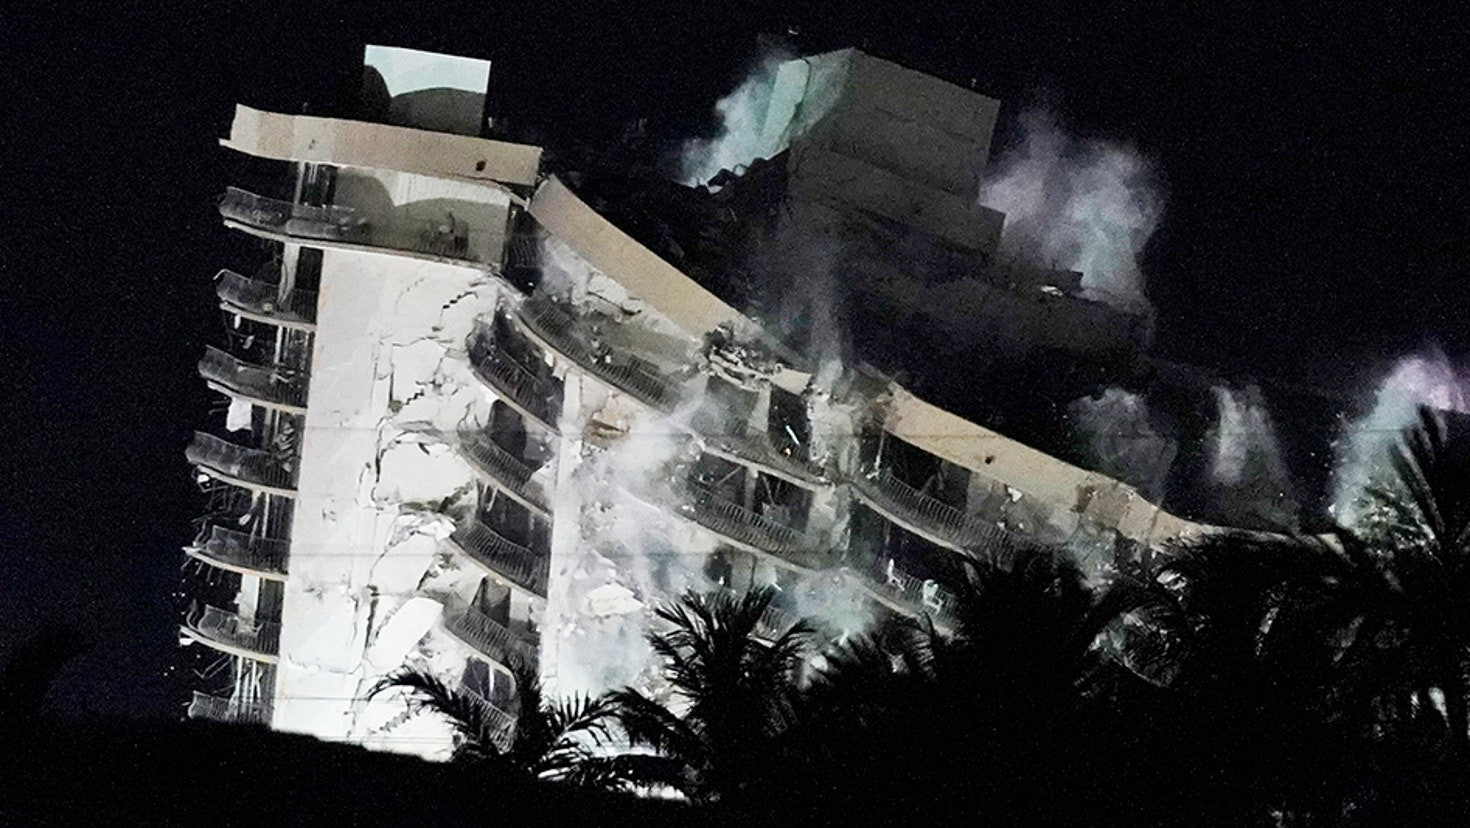 Miami building that caused 24 deaths with 121 people still missing, is brought down with explosives